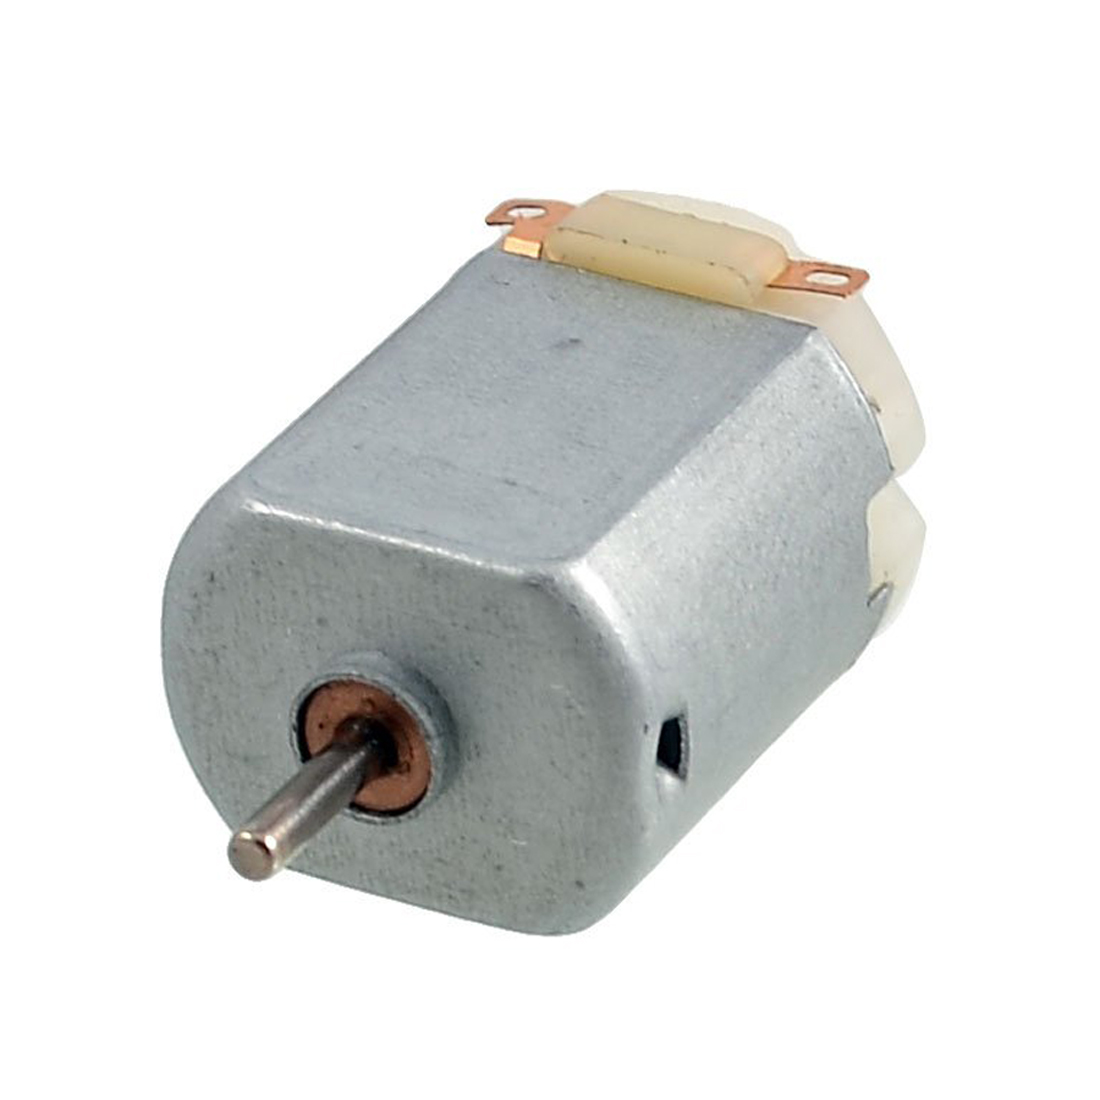 Dc 3v 0 2a 12000rpm Mini Electric Motor For Diy